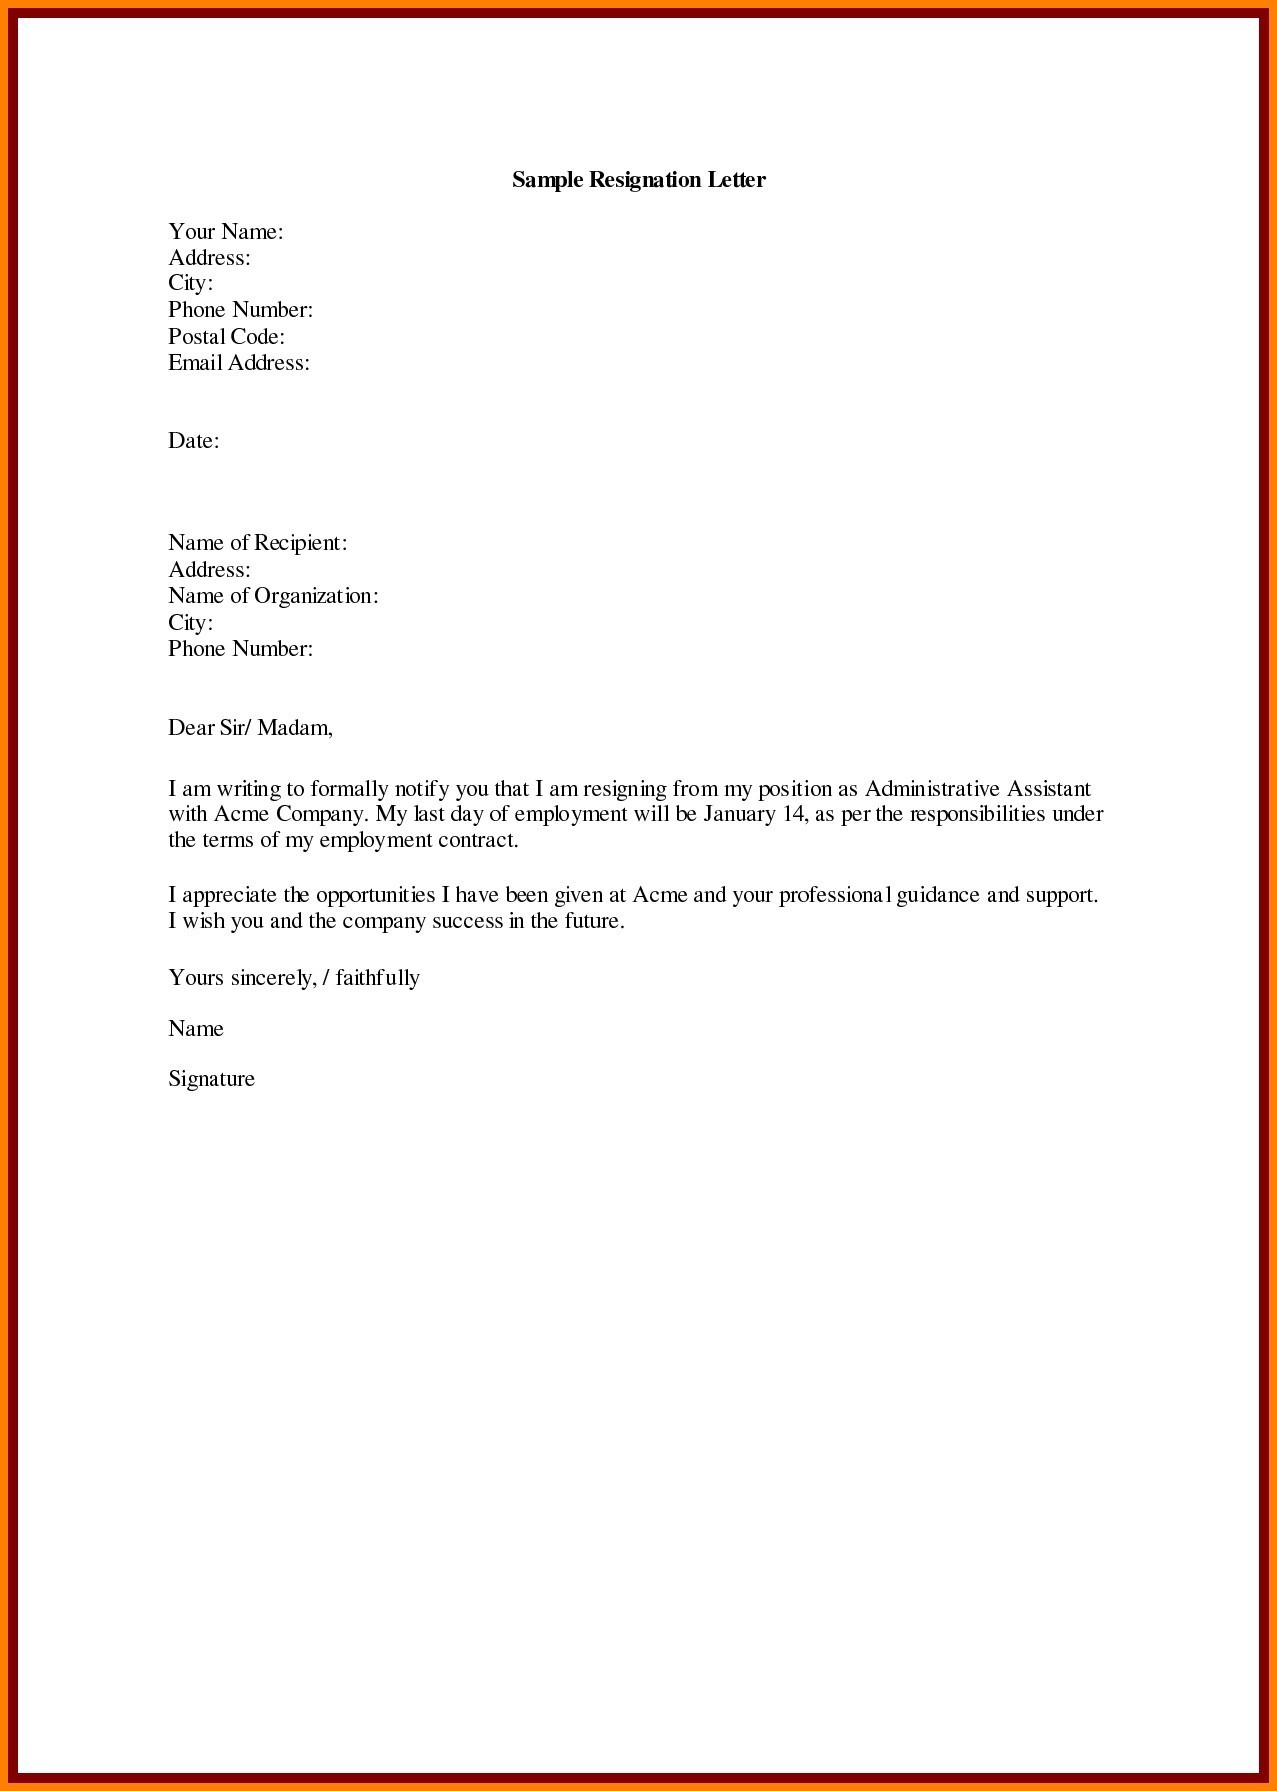 Immediate Resignation Letter Template - Sample Resignation Letter Template Doc Copy Samples Resignation